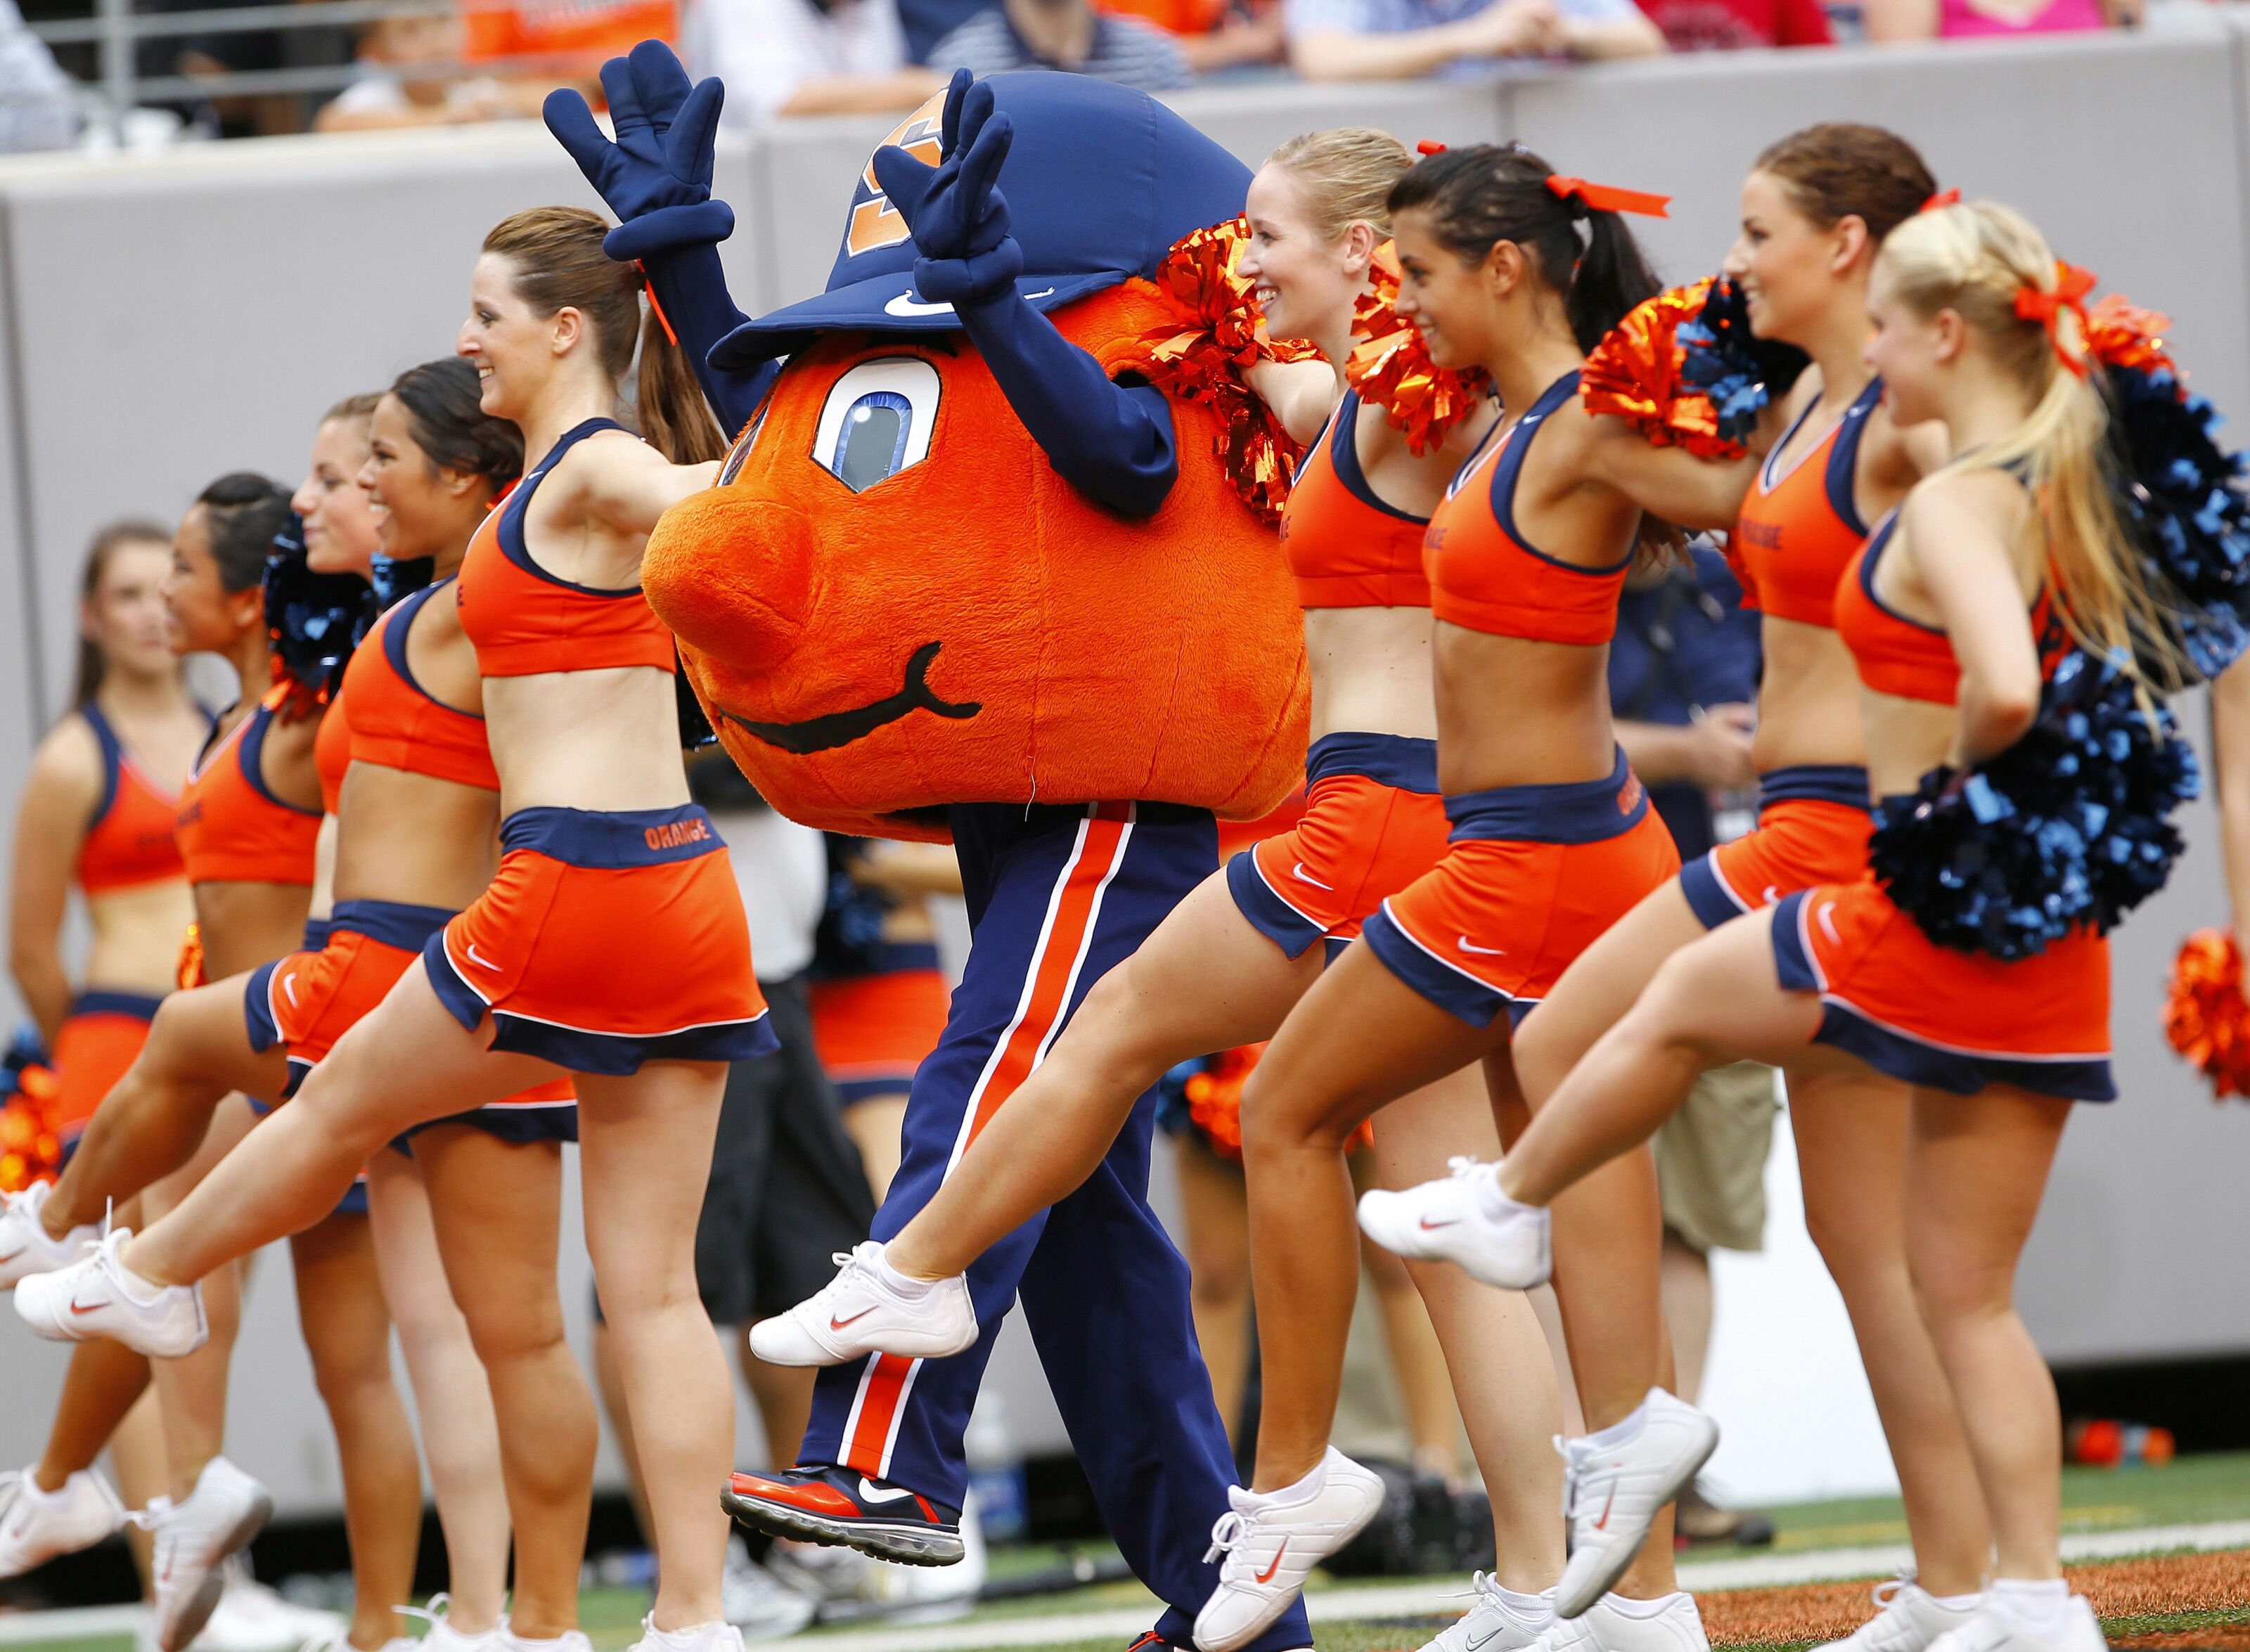 Syracuse football will debut a new uniform for the very 1st time in Week 4